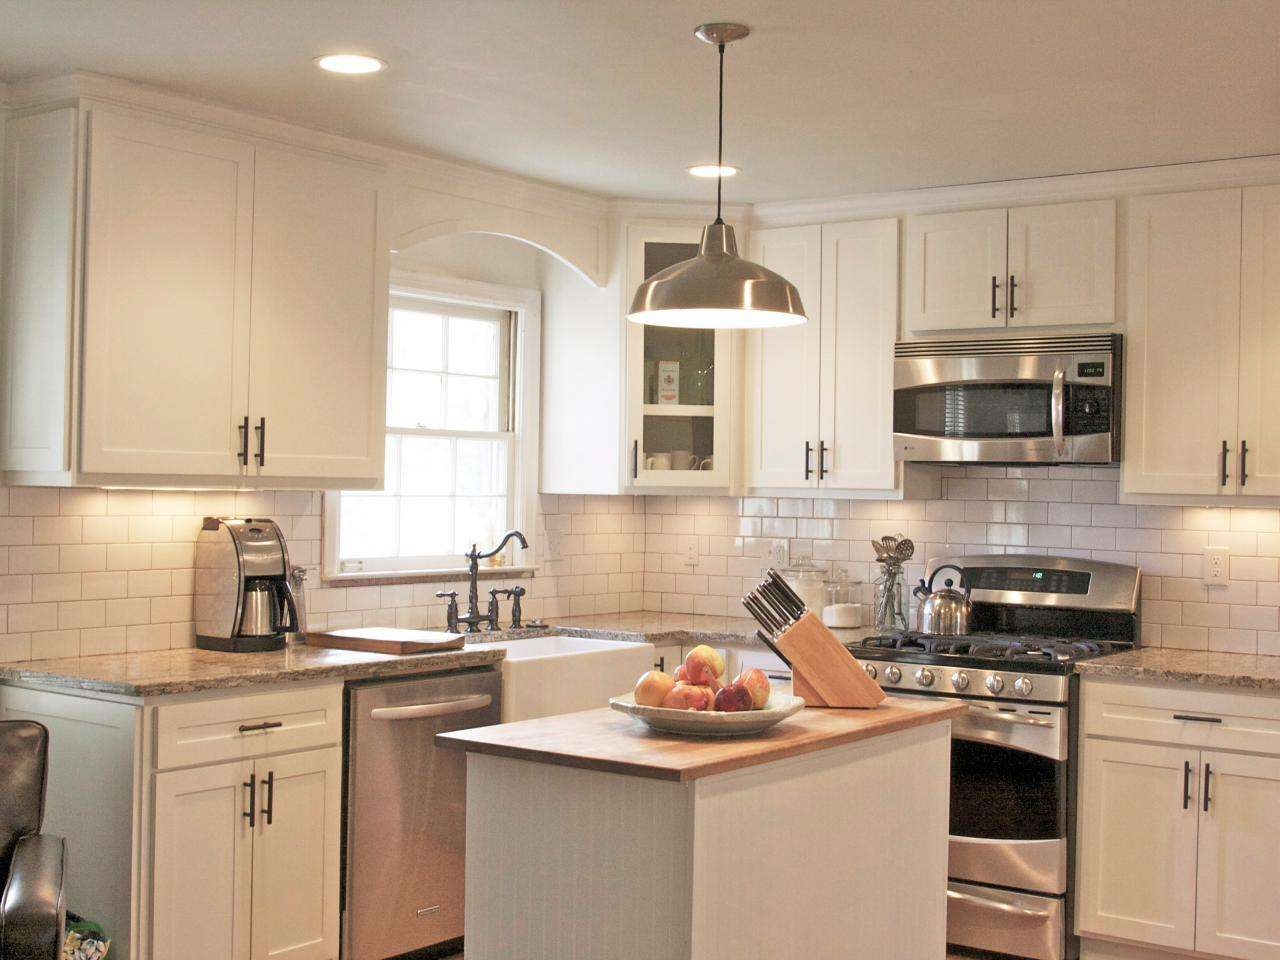 Cottage Kitchen Stainless Steel Appliances Charming